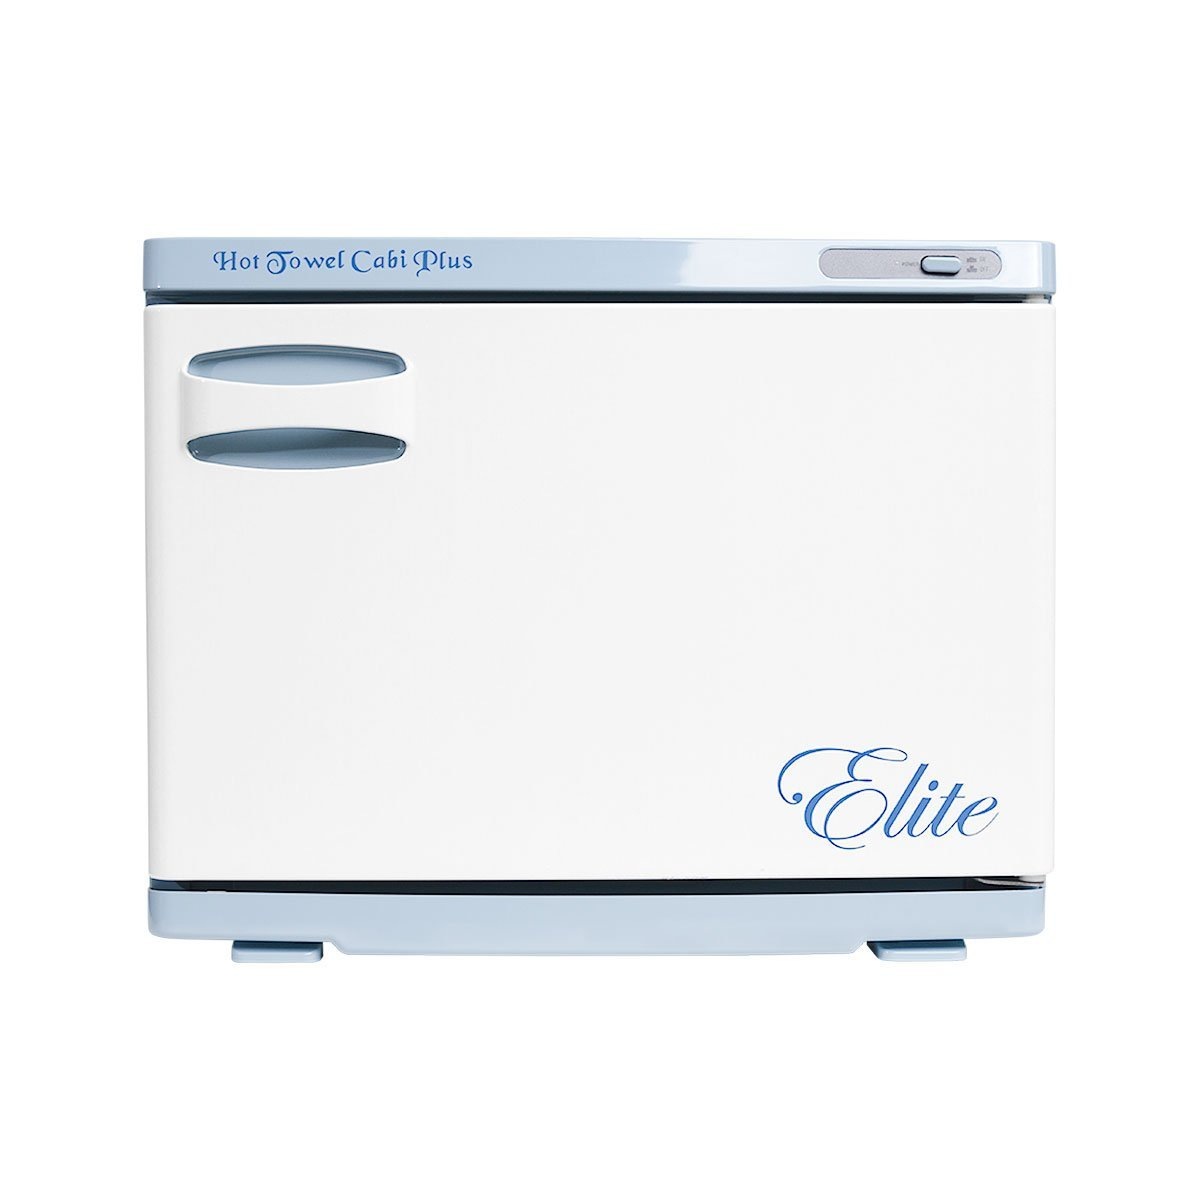 Elite Hot Towel Cabi-Warmer - Cabinet Style Towel Warmer, Designed for Facial or Hand Towels